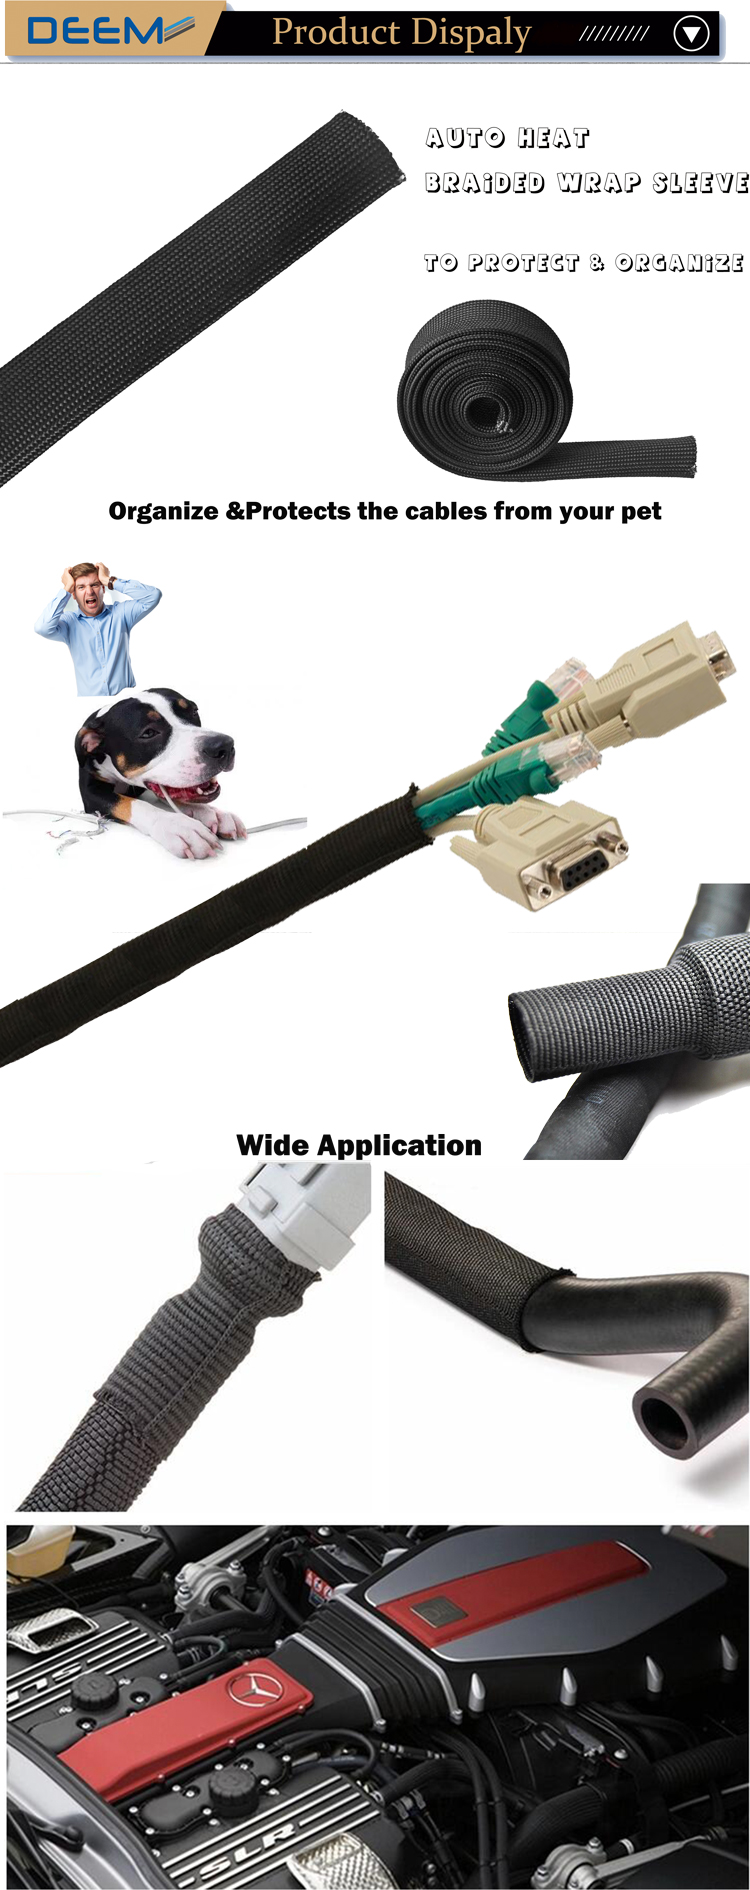 DEEM Fire Resistant and free sample heat shrink cable protection sleeve